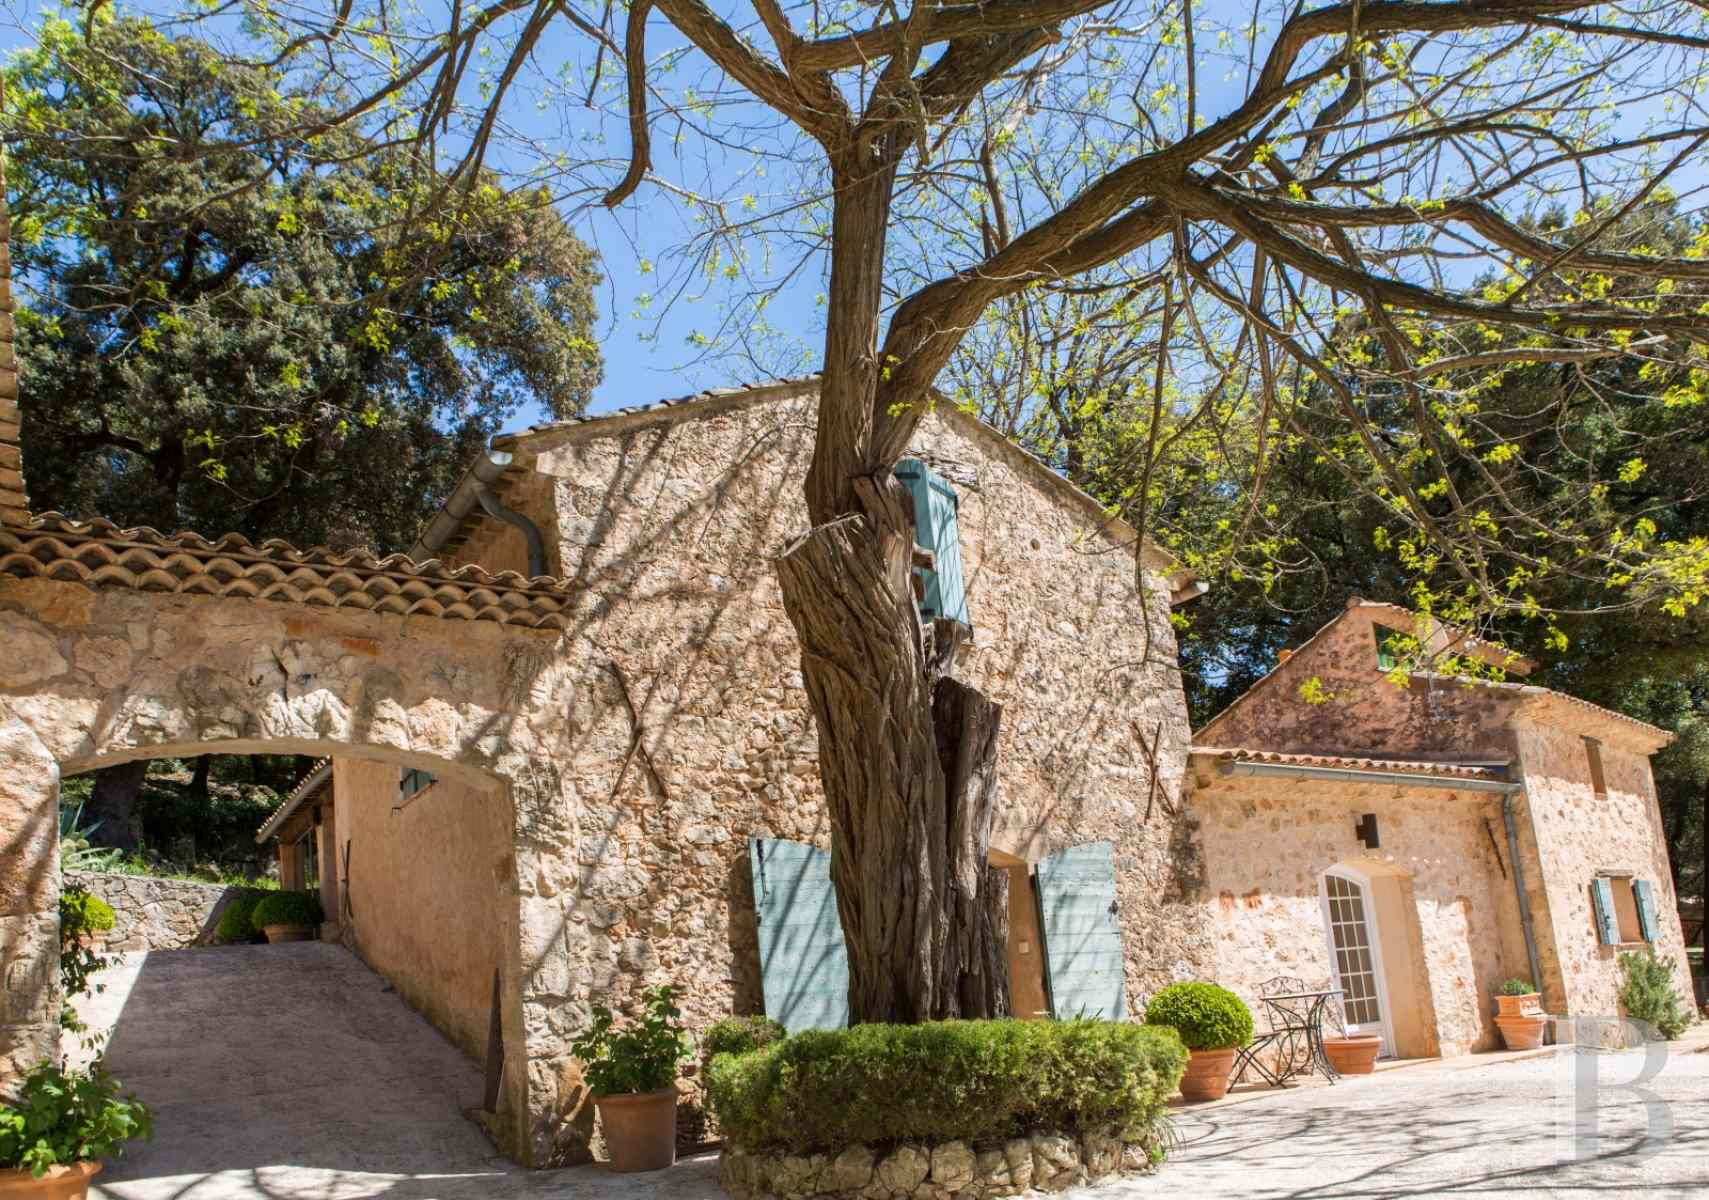 property for sale France provence cote dazur hyeres property - 9 zoom